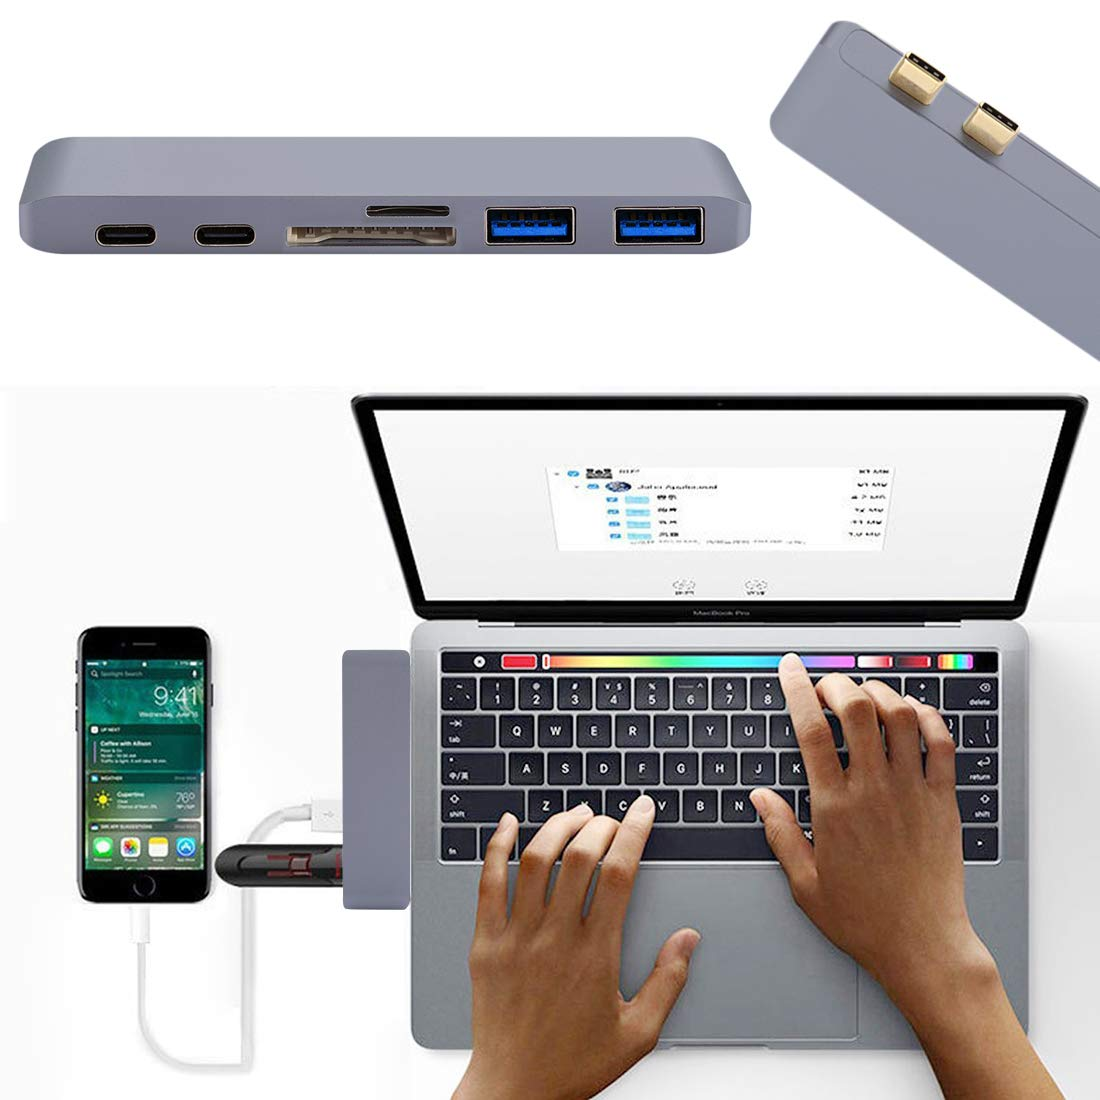 JINYANG USB Hub 6 in 1 Multi-Function Aluminium Alloy 5Gbps Transfer Rate Dual USB-C//Type-C HUB Adapter with 2 USB 3.0 Ports /& 2 USB-C//Type-C Ports /& SD Card Slot /& TF Card Slot for MacBook 2015 //